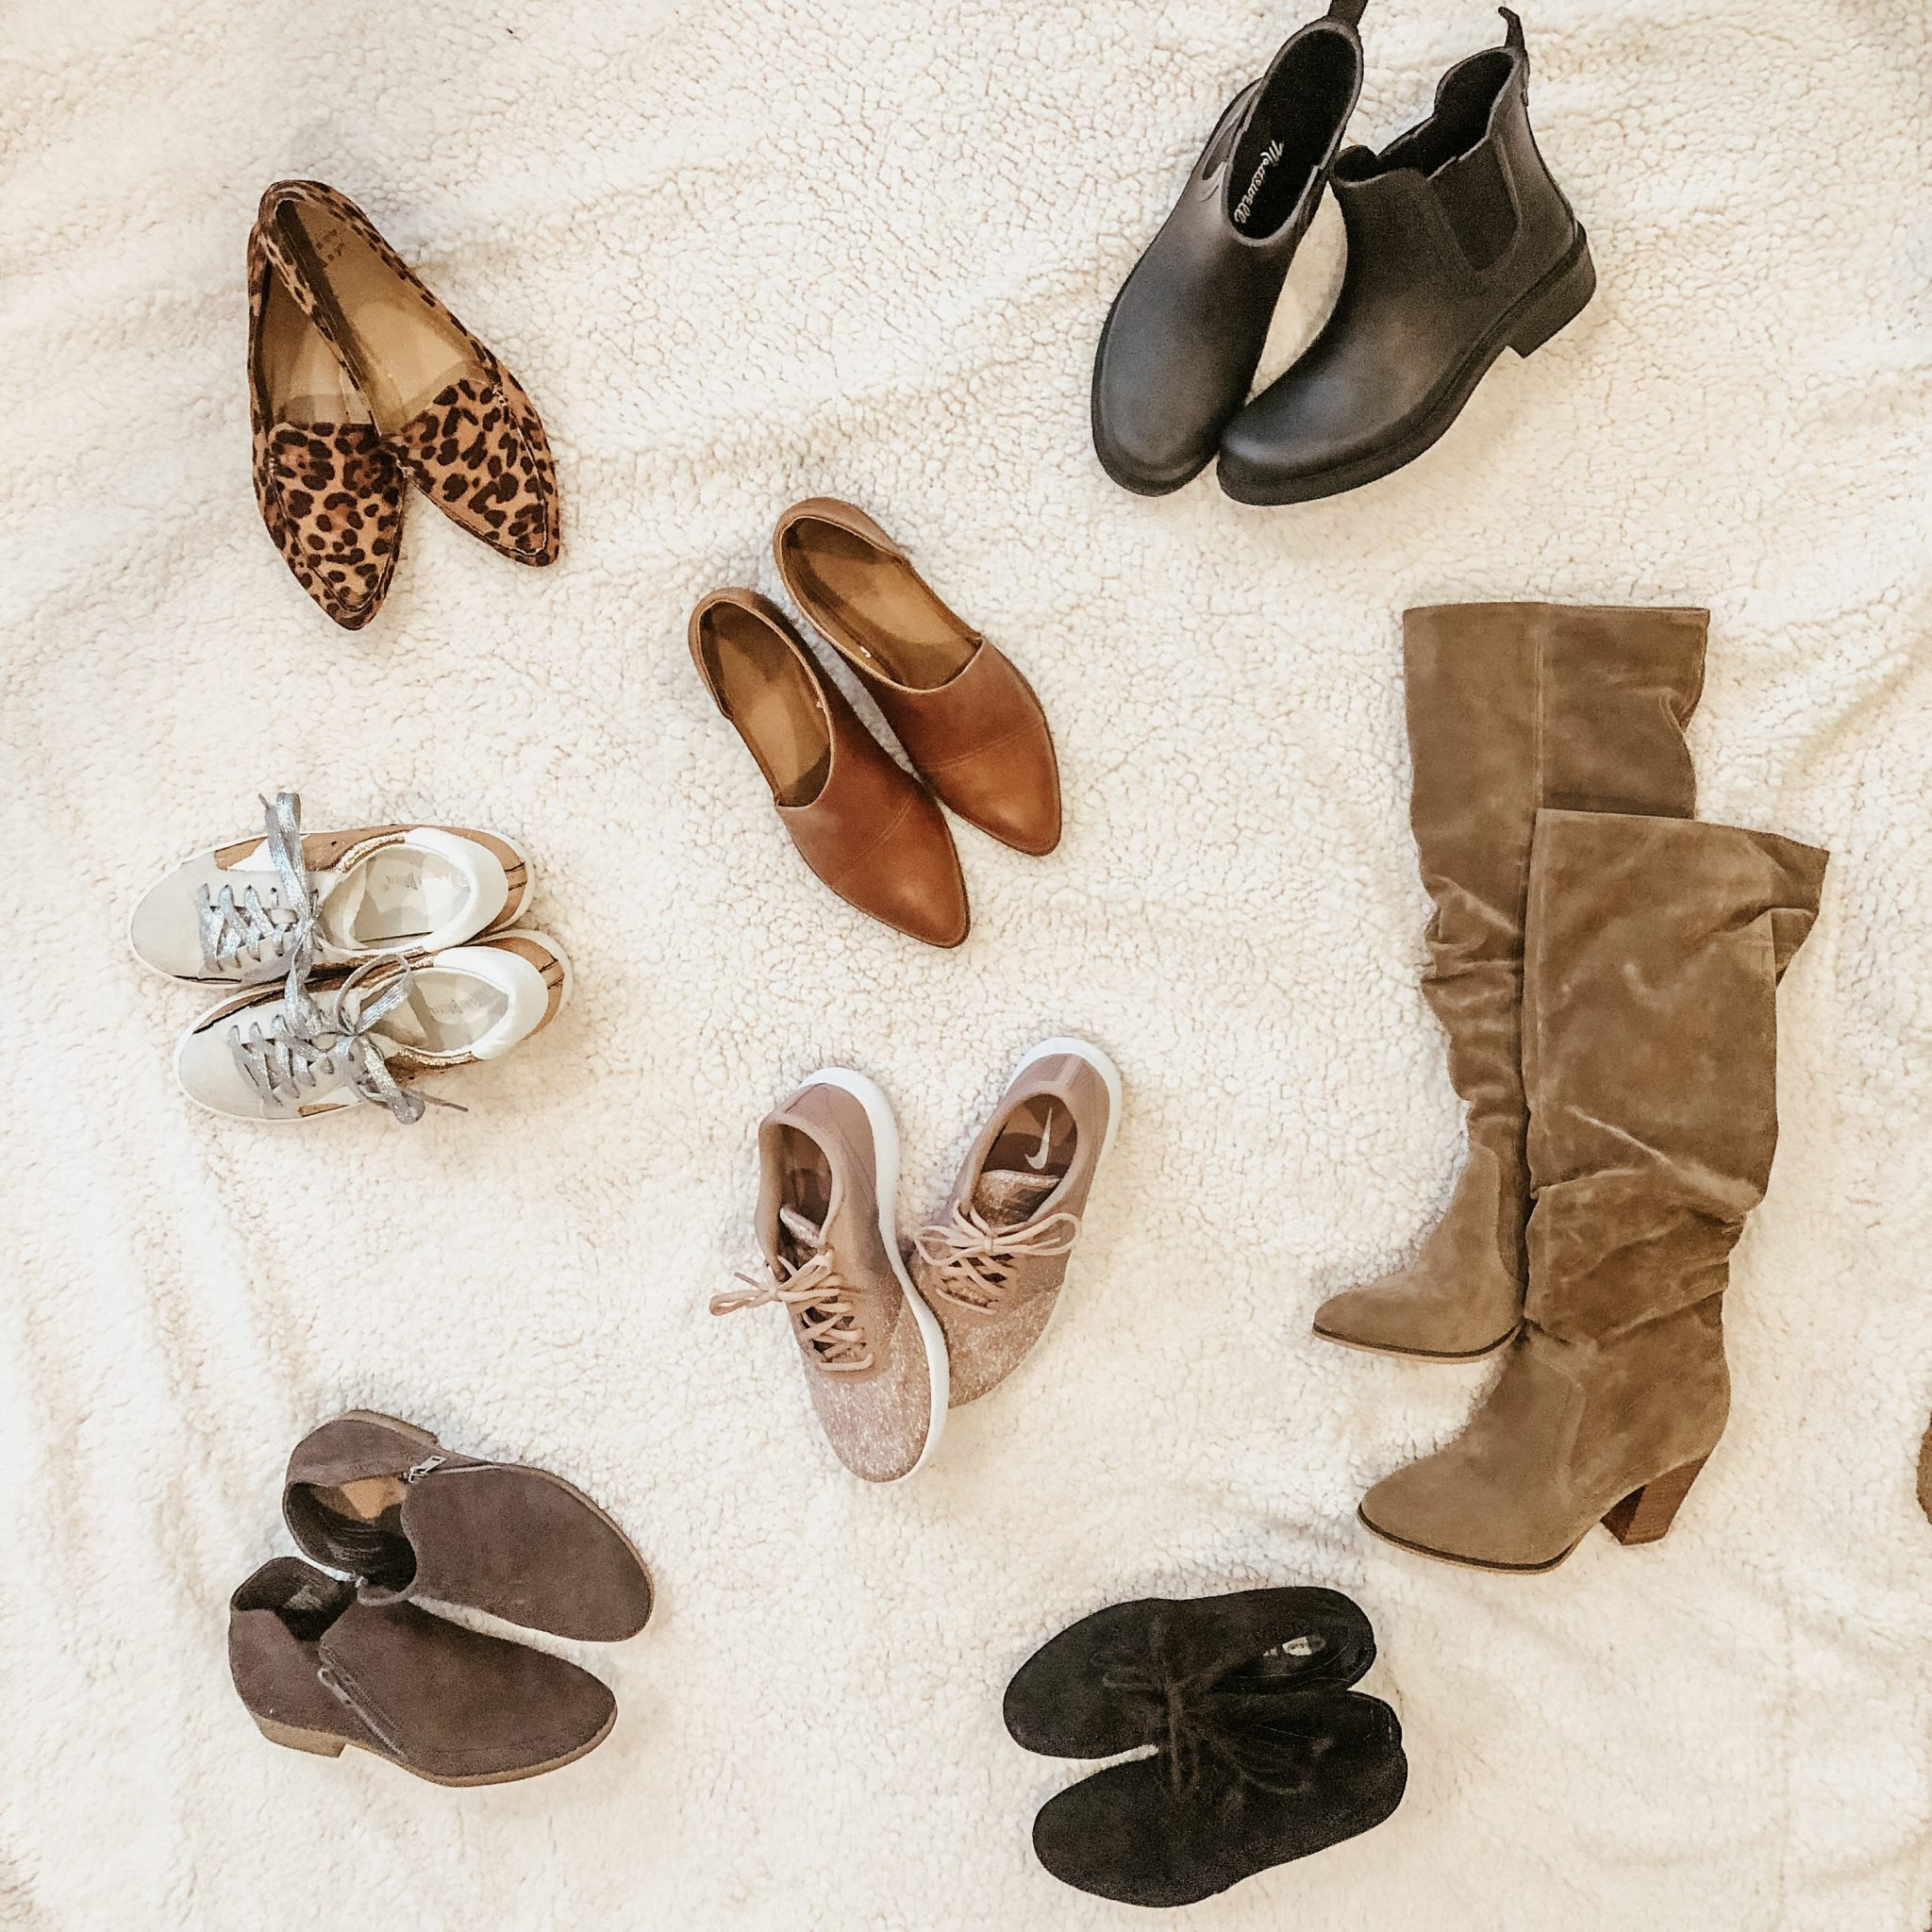 Shoe capsule for fall | Daily Splendor Life and Style Blog | #fallshoes #shoeroundup #shoecapsule #booties #flatlay #sneakers #fallstyle #momstyle #casualstyle #targetstyle